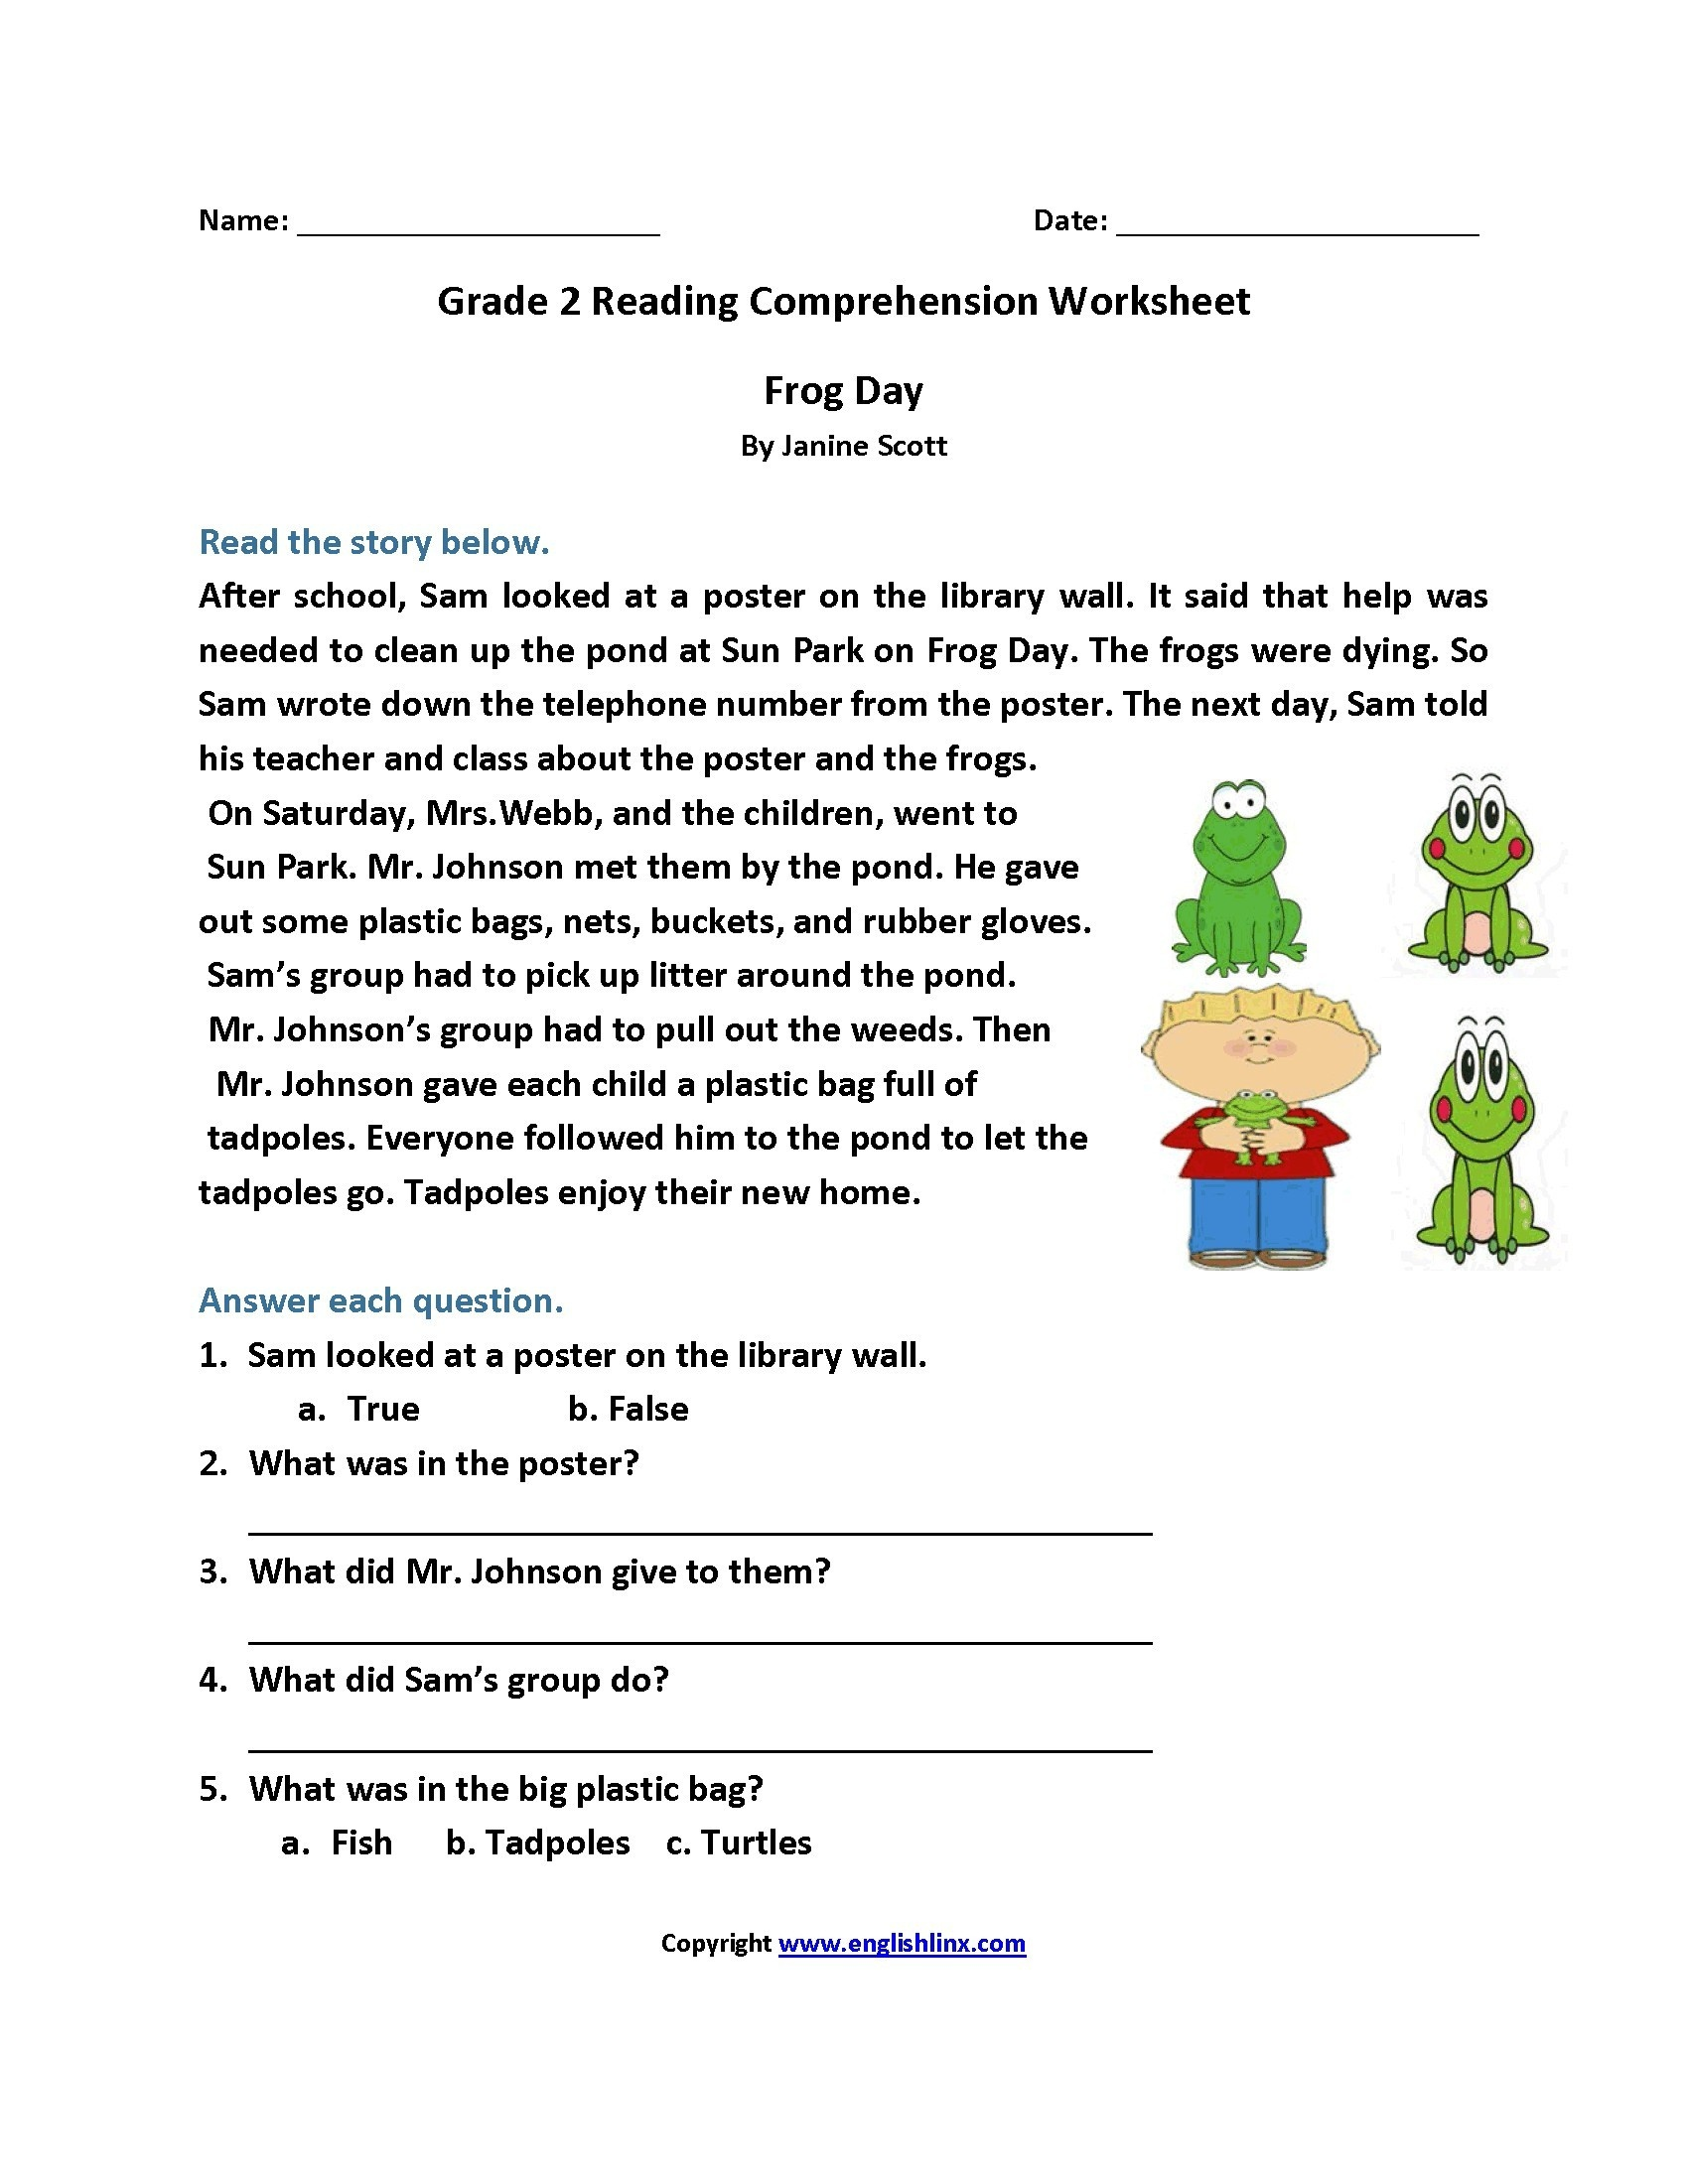 Worksheet : Free Printable Short Stories With Comprehension - Free Printable Stories For 4Th Graders